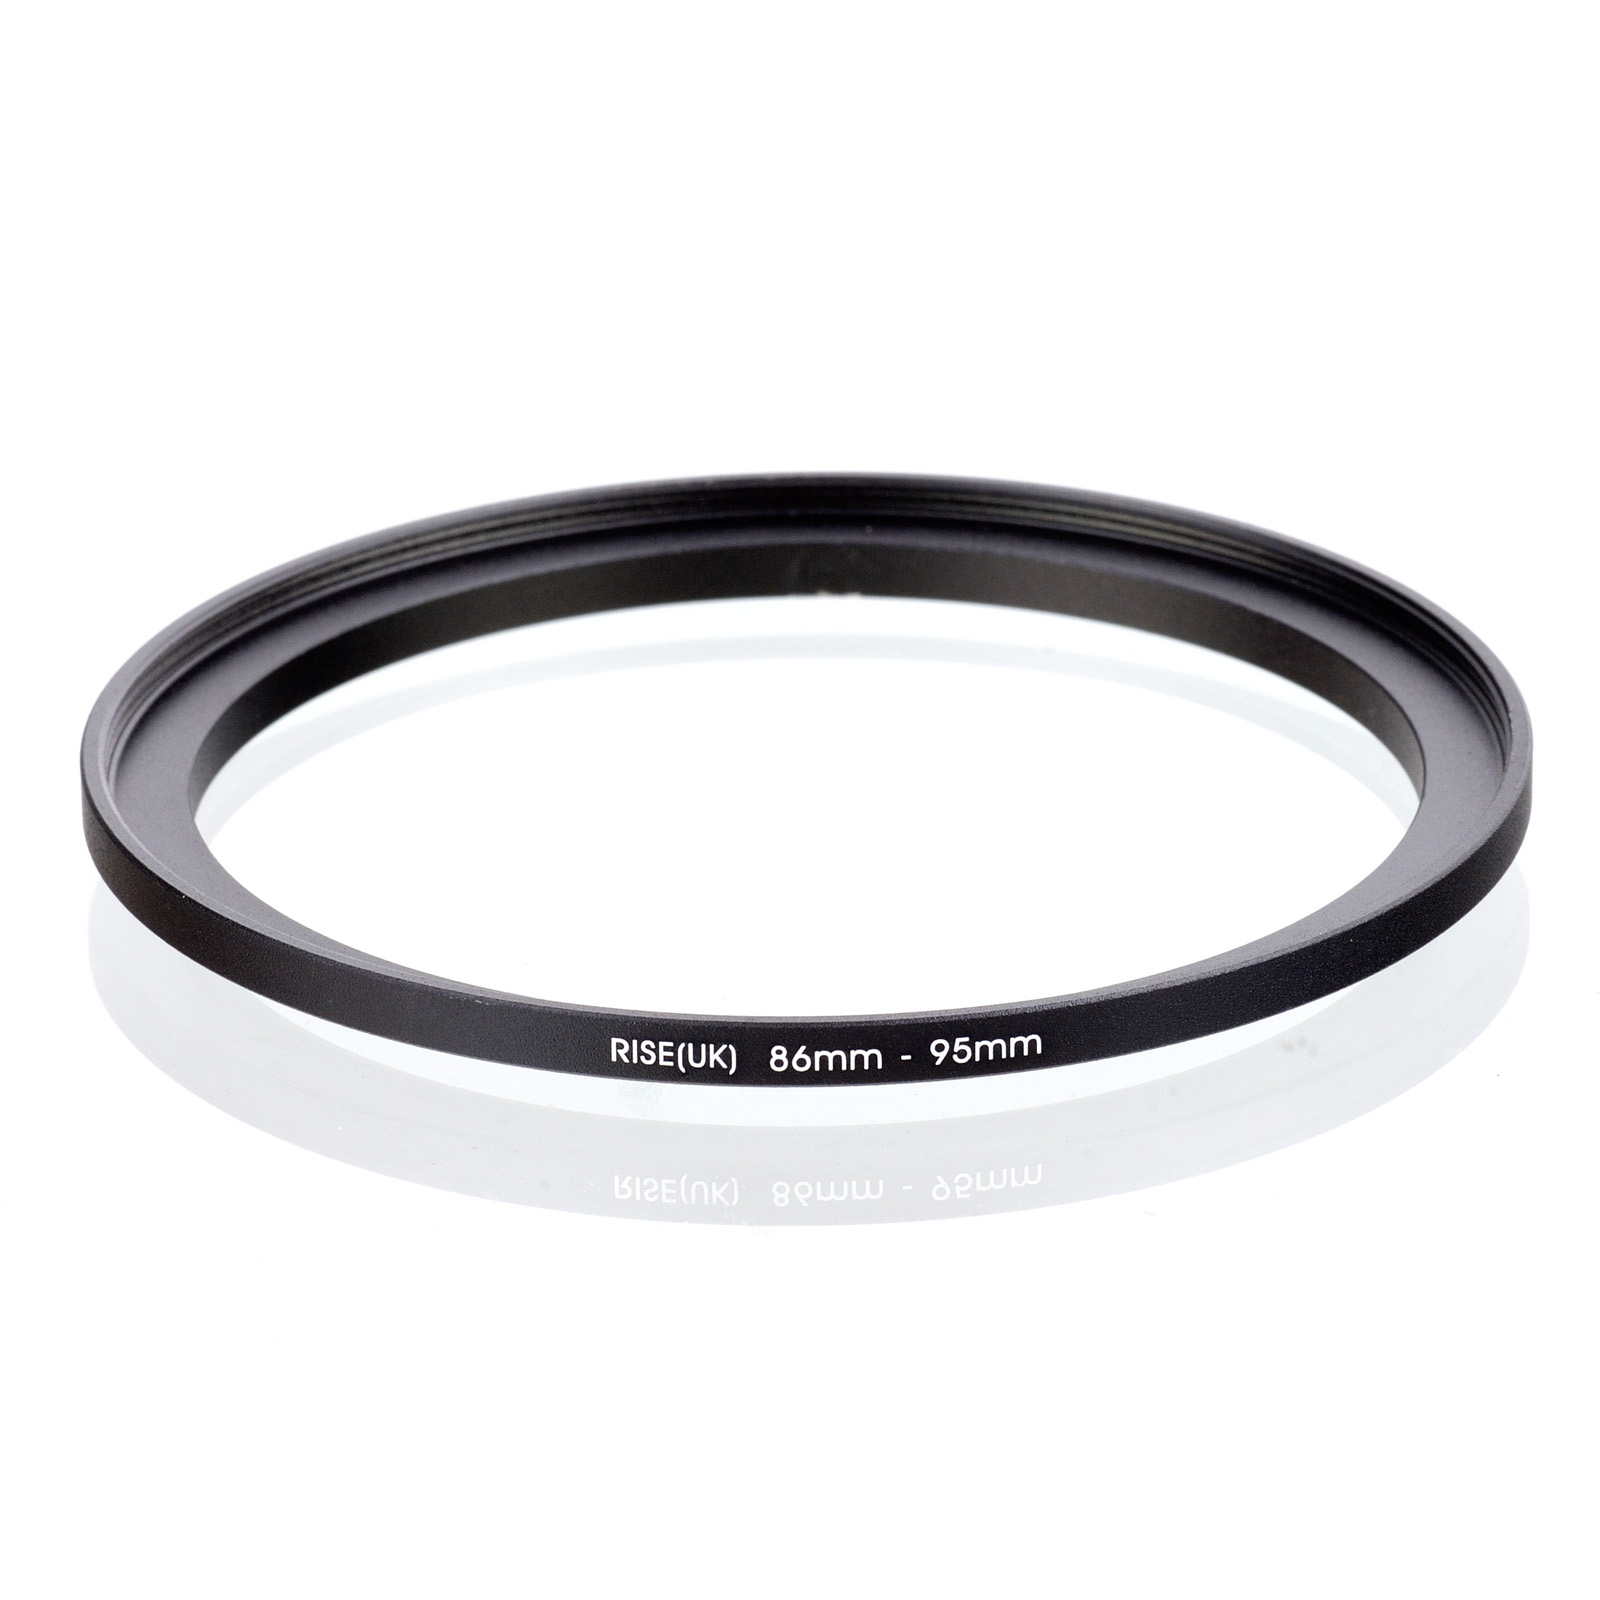 86-95 MM 86 MM - 95 MM 86 to 95 Step Up Ring Filter Adapter